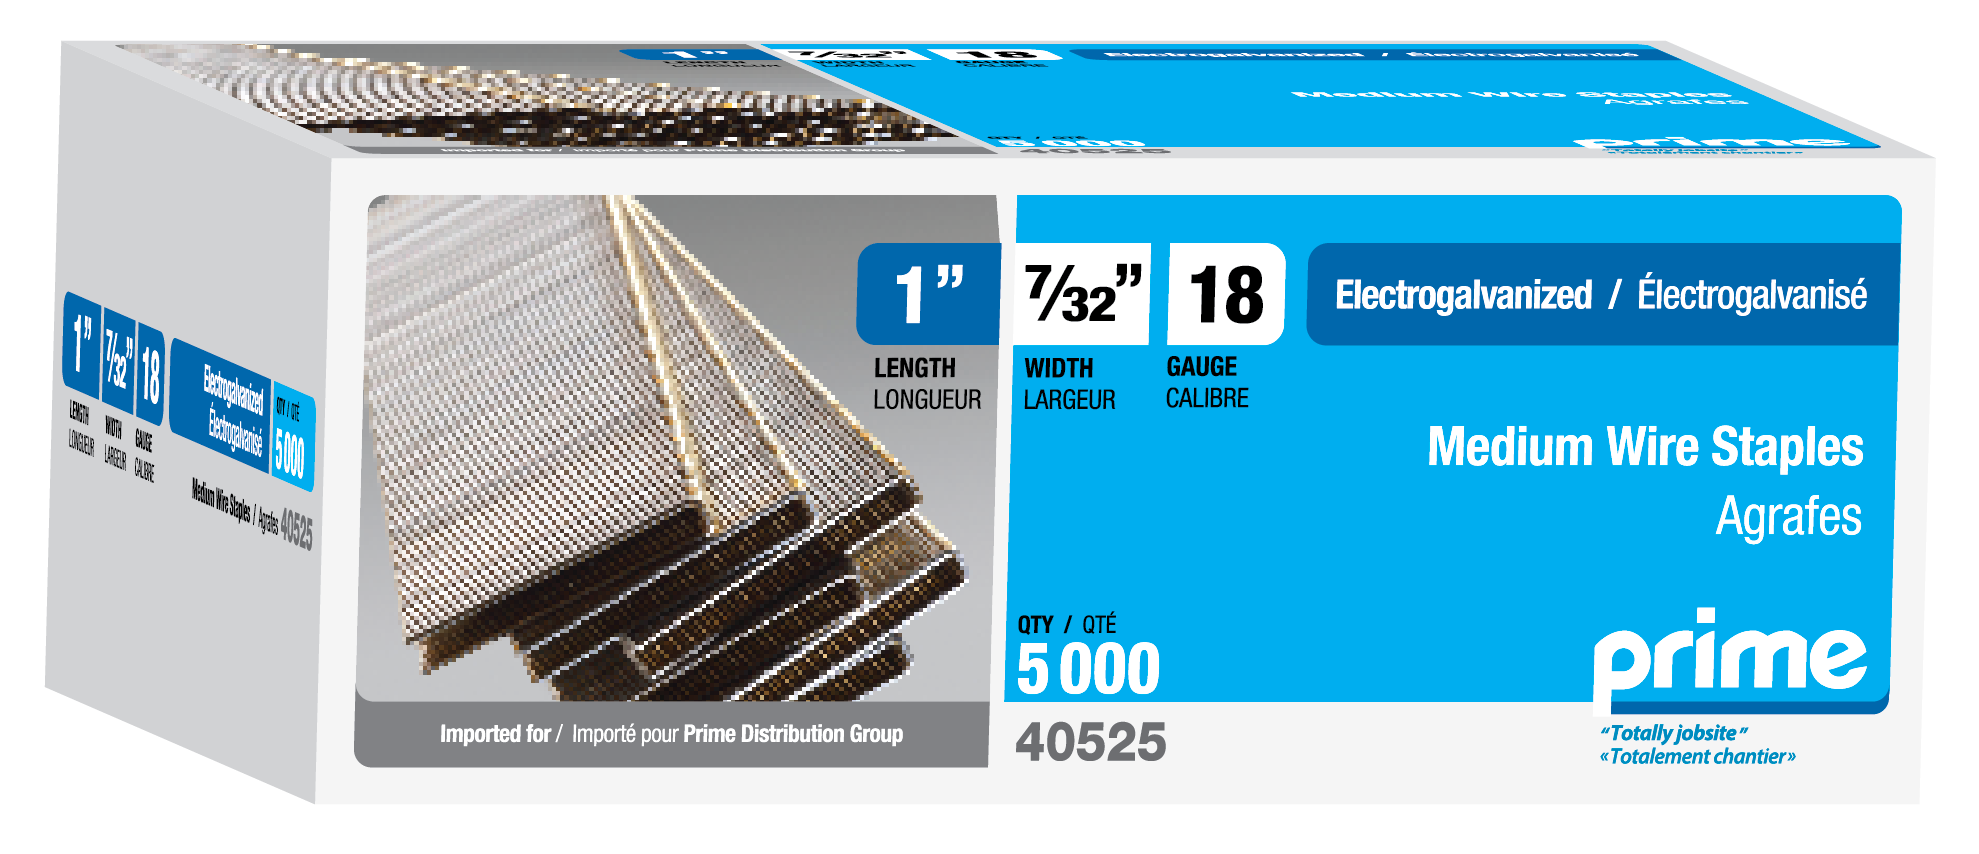 Products - Prime Fasteners